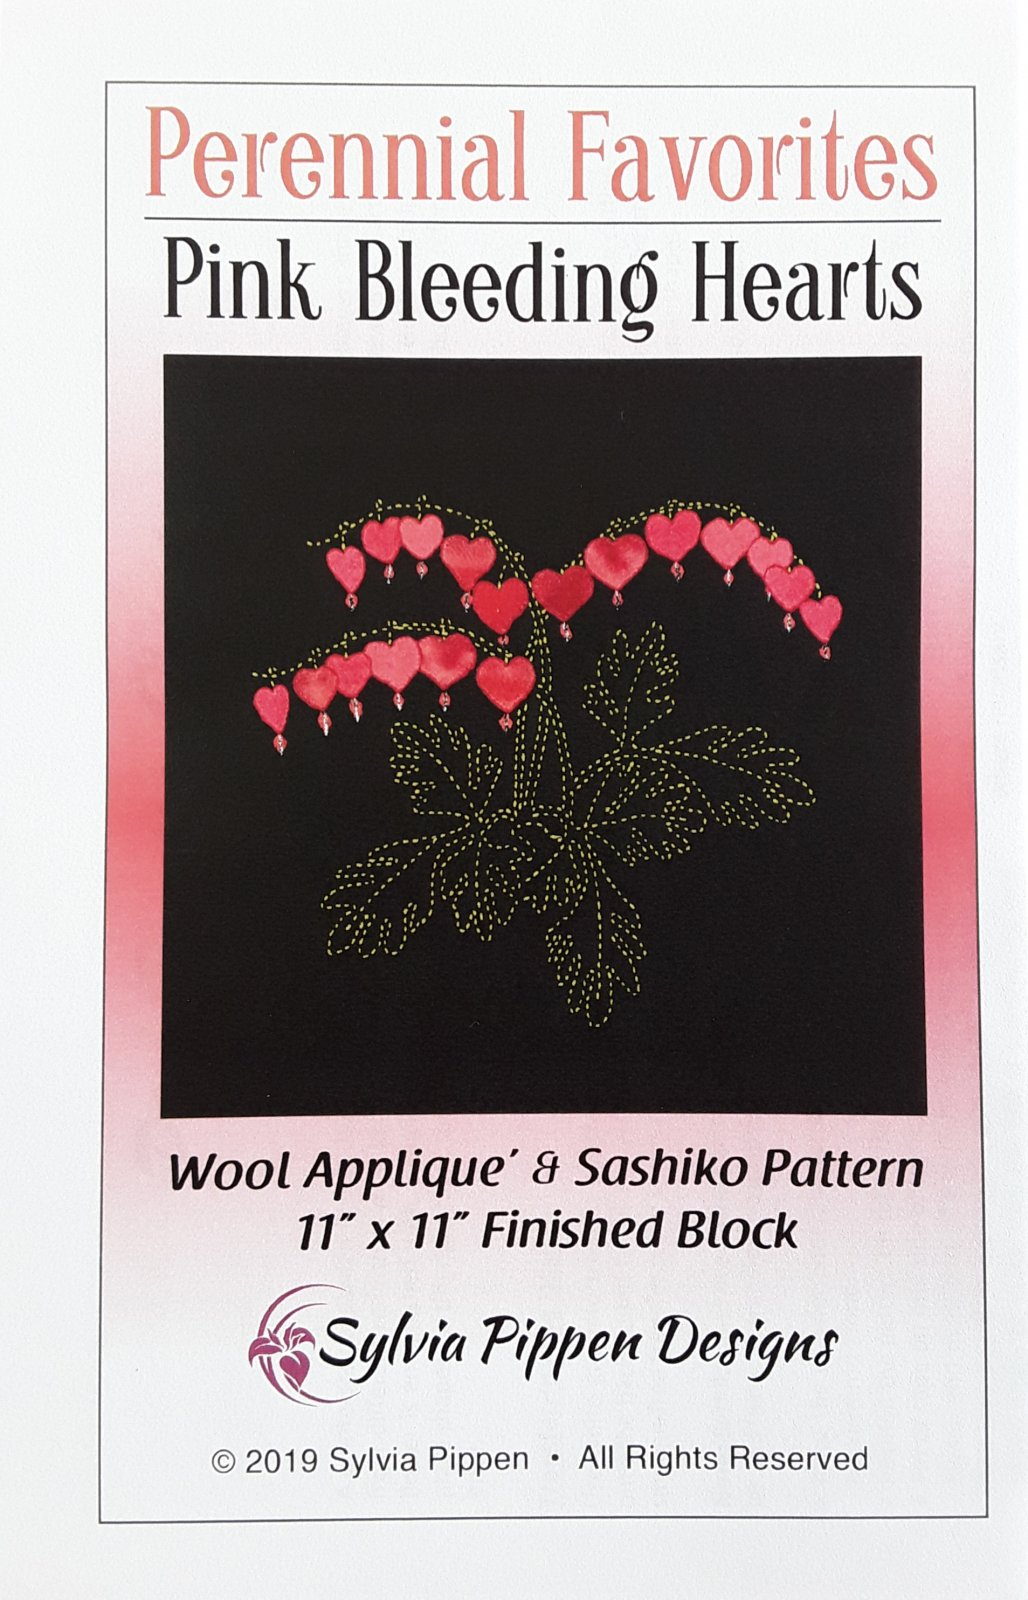 Perennial Favorites Pink Bleeding Hearts Wool Applique & Sashiko Pattern